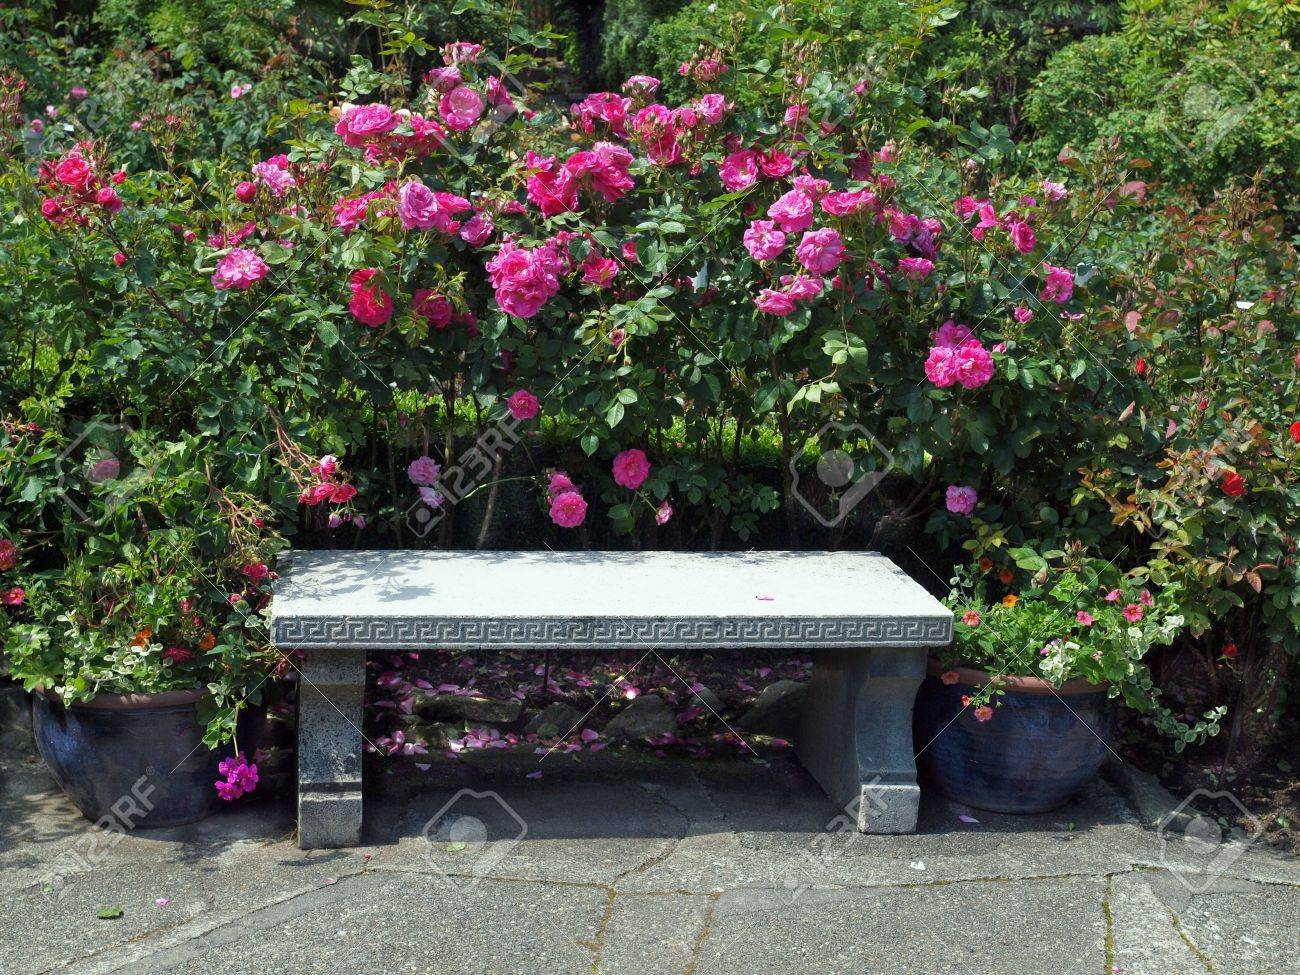 Concrete Bench In The Rose Garden Stock Photo, Picture And Royalty